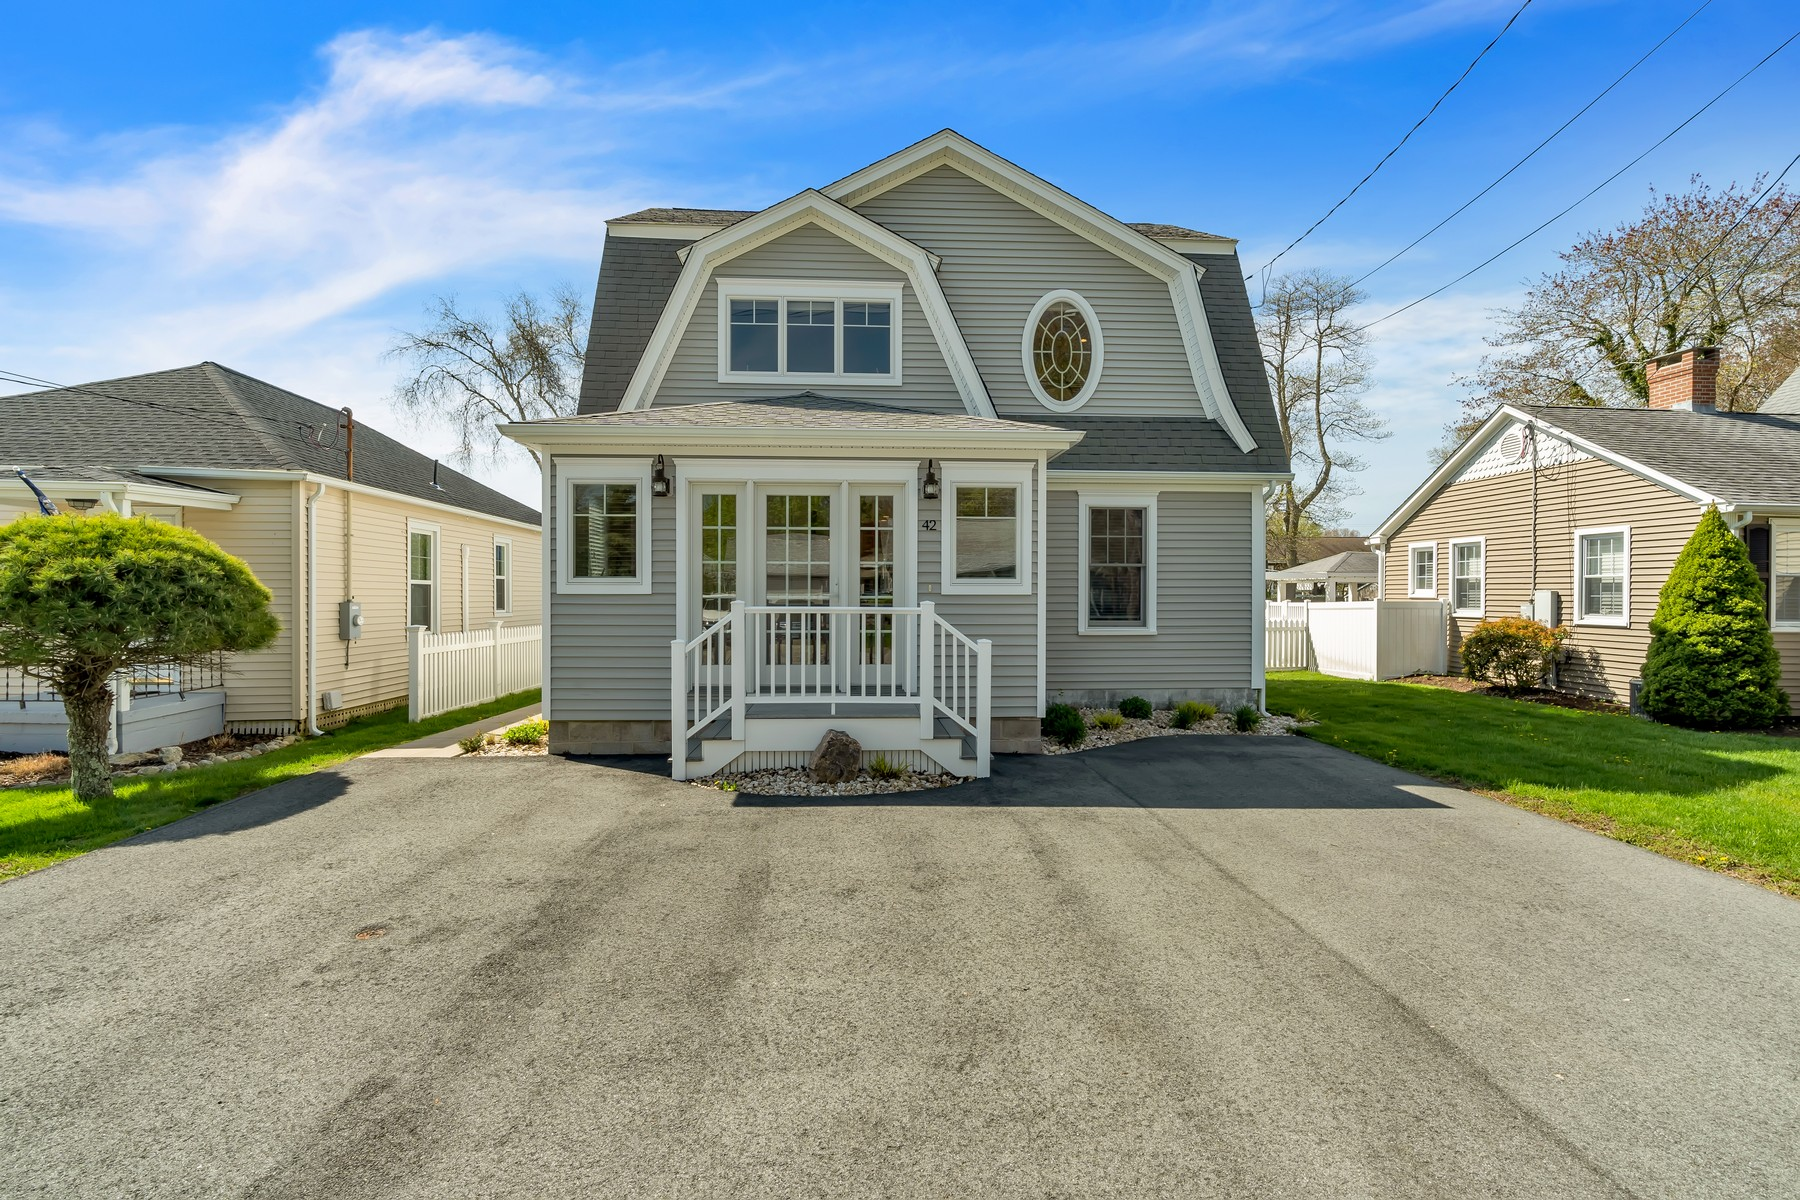 Single Family Homes for Sale at Beautifully Remodeled Home Located in Black Point Beach Community 42 Nehantic Dr East Lyme, Connecticut 06357 United States